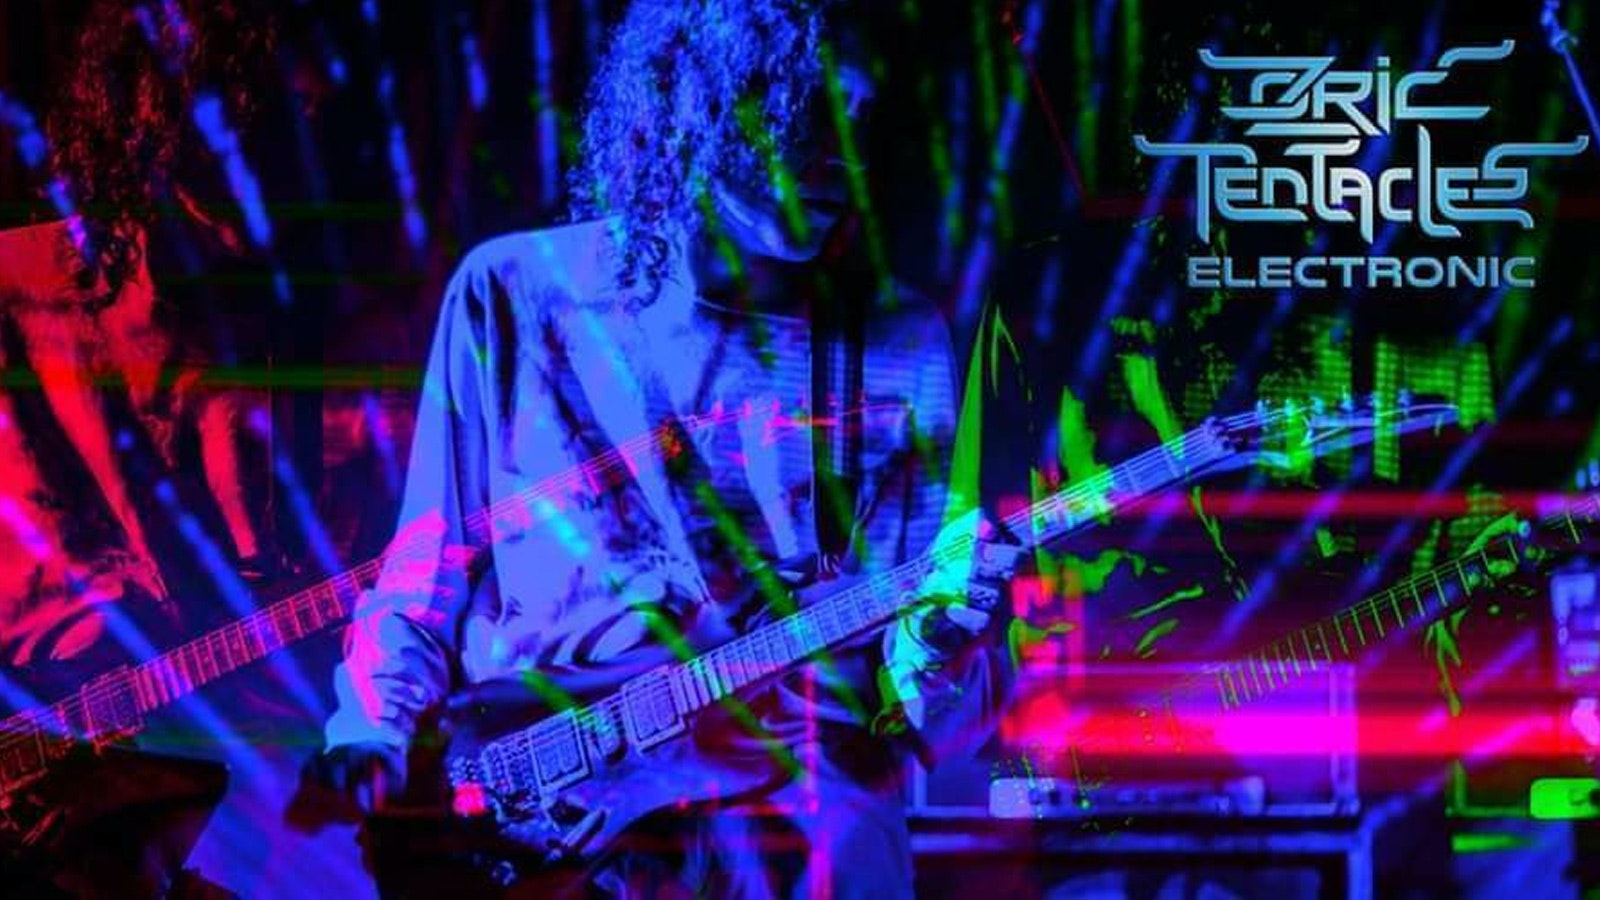 Ozric Tentacles Electronic